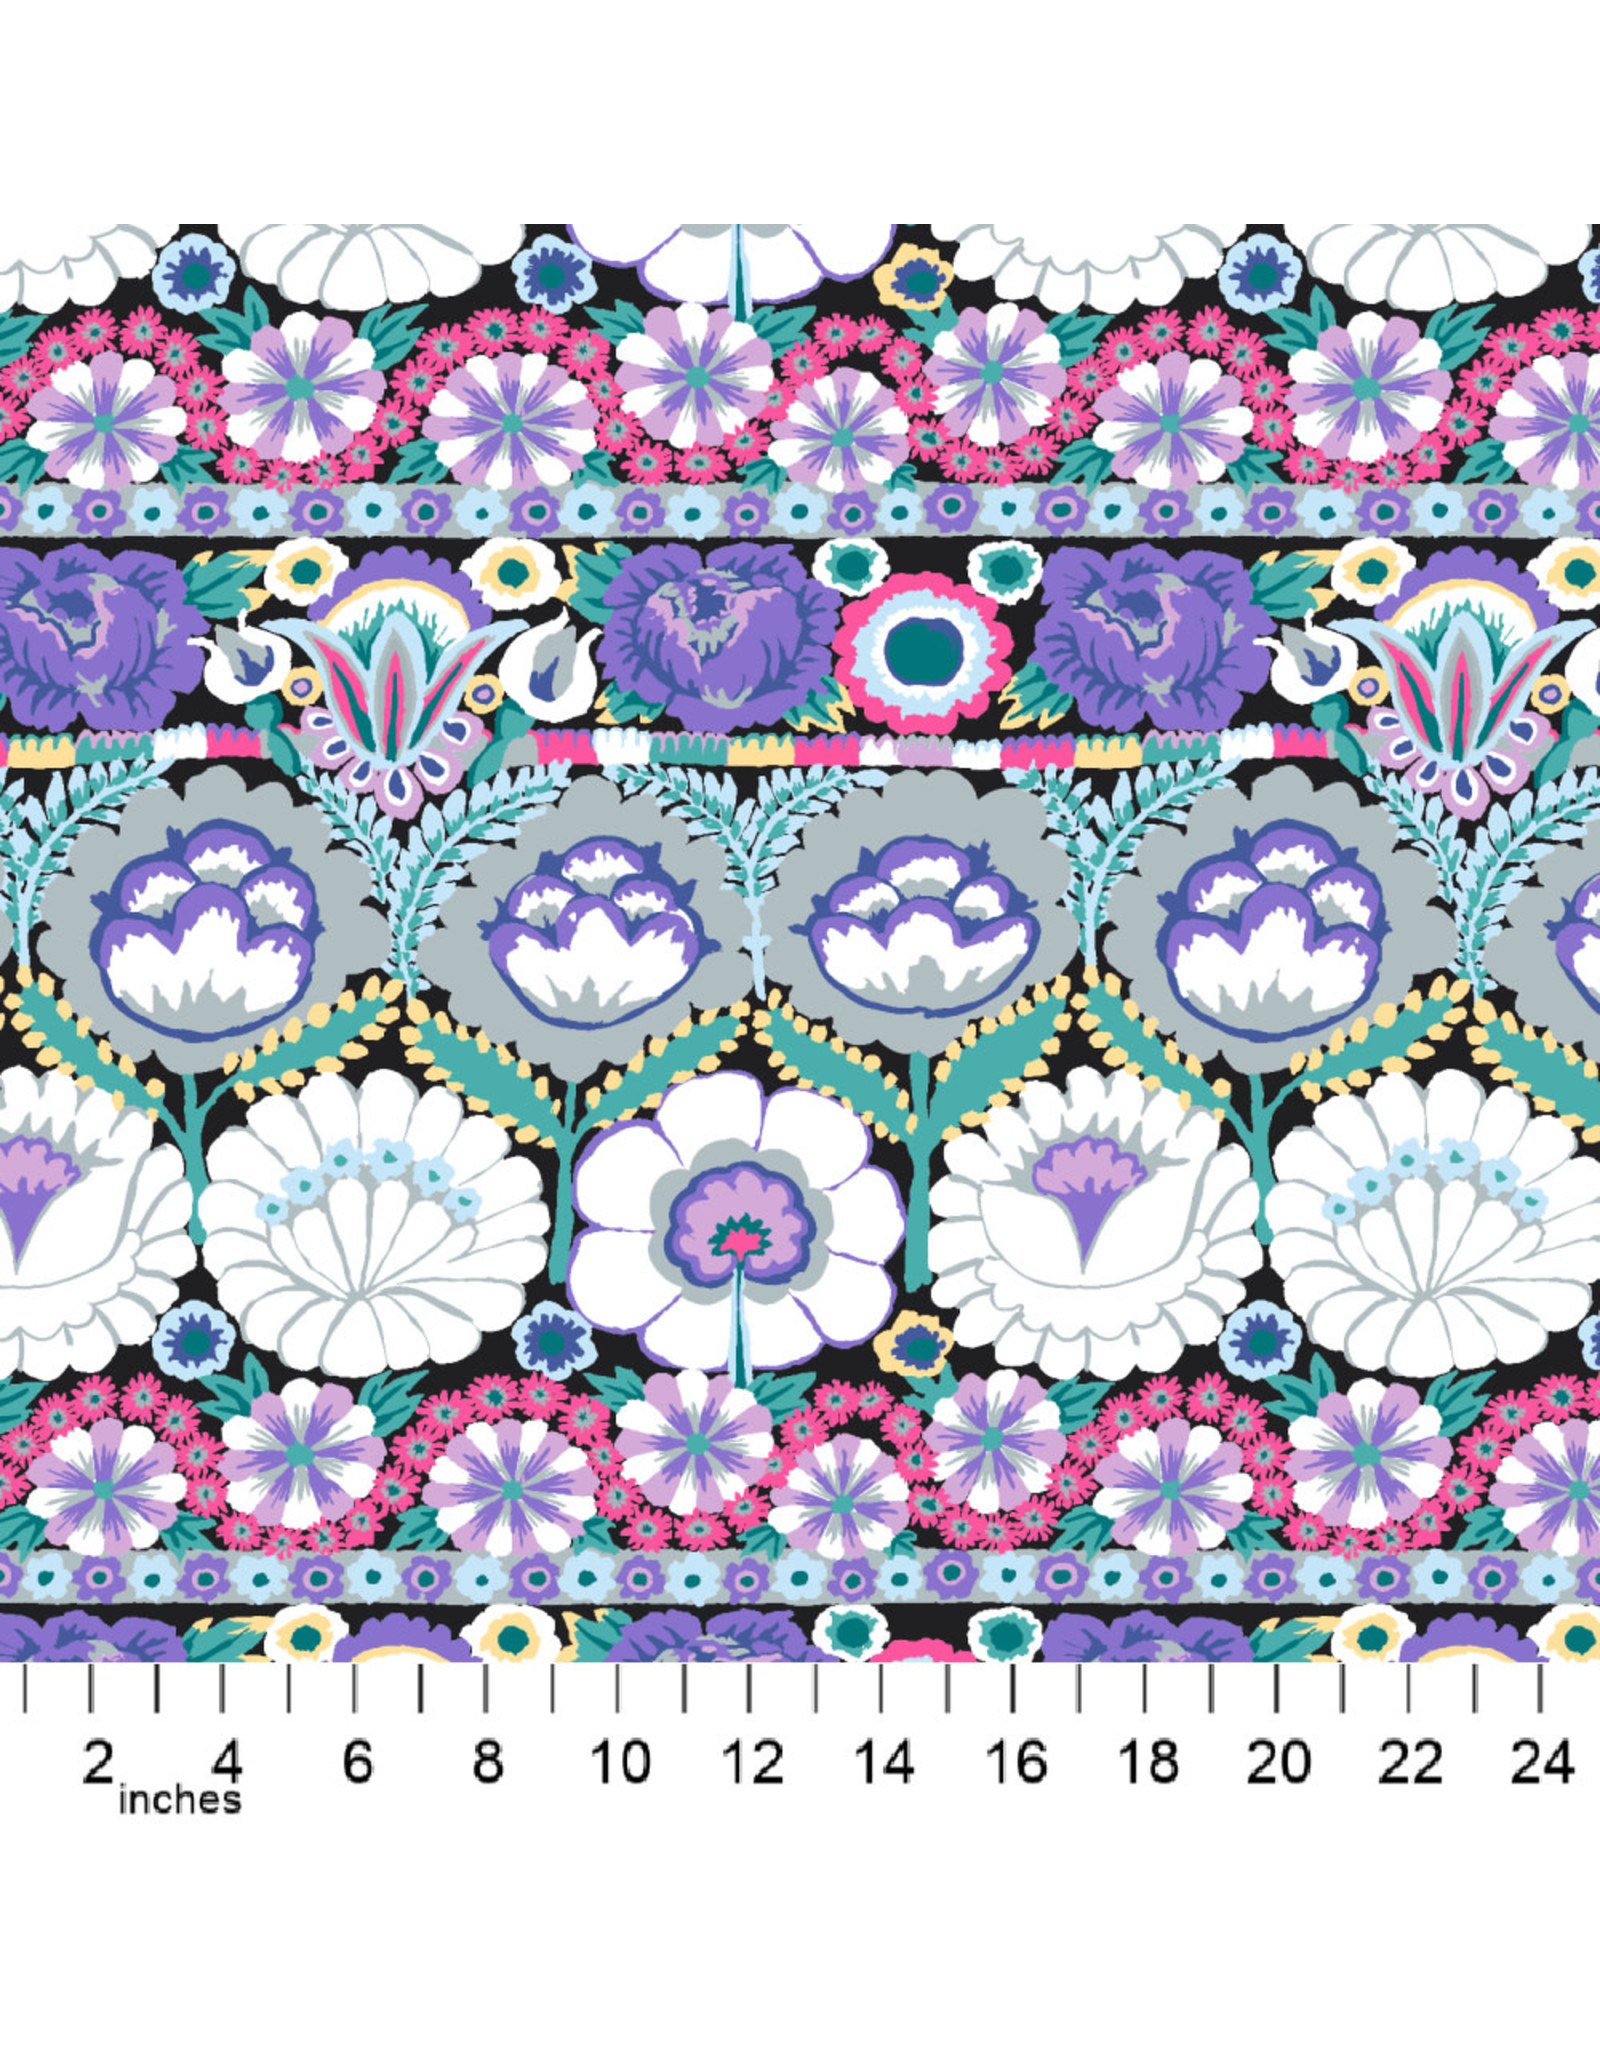 PD's Kaffe Fassett Collection Kaffe Collective 2021, Embroidered Flower in Contrast, Dinner Napkin